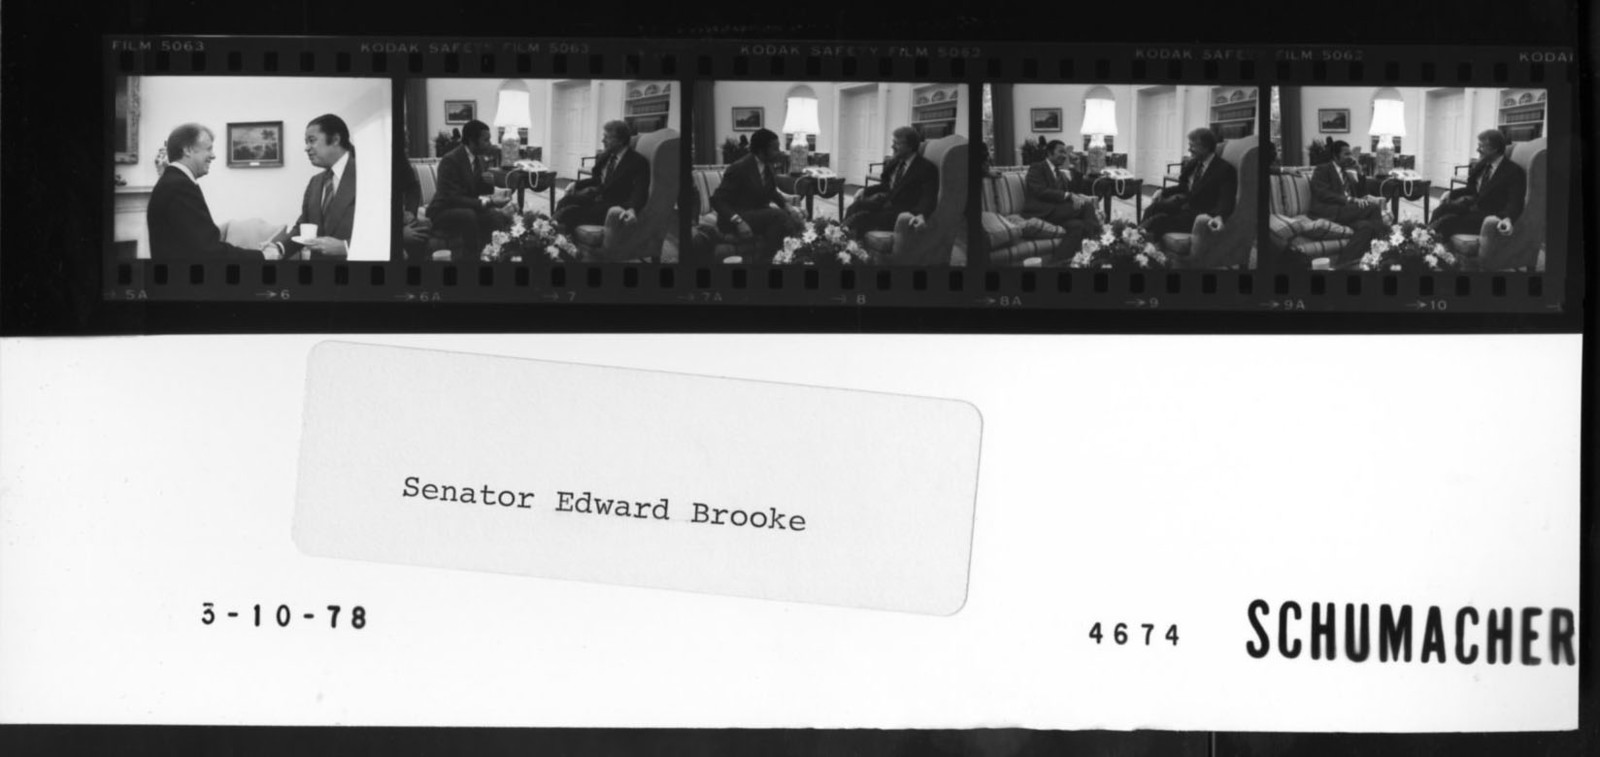 Senator Edward Brooke